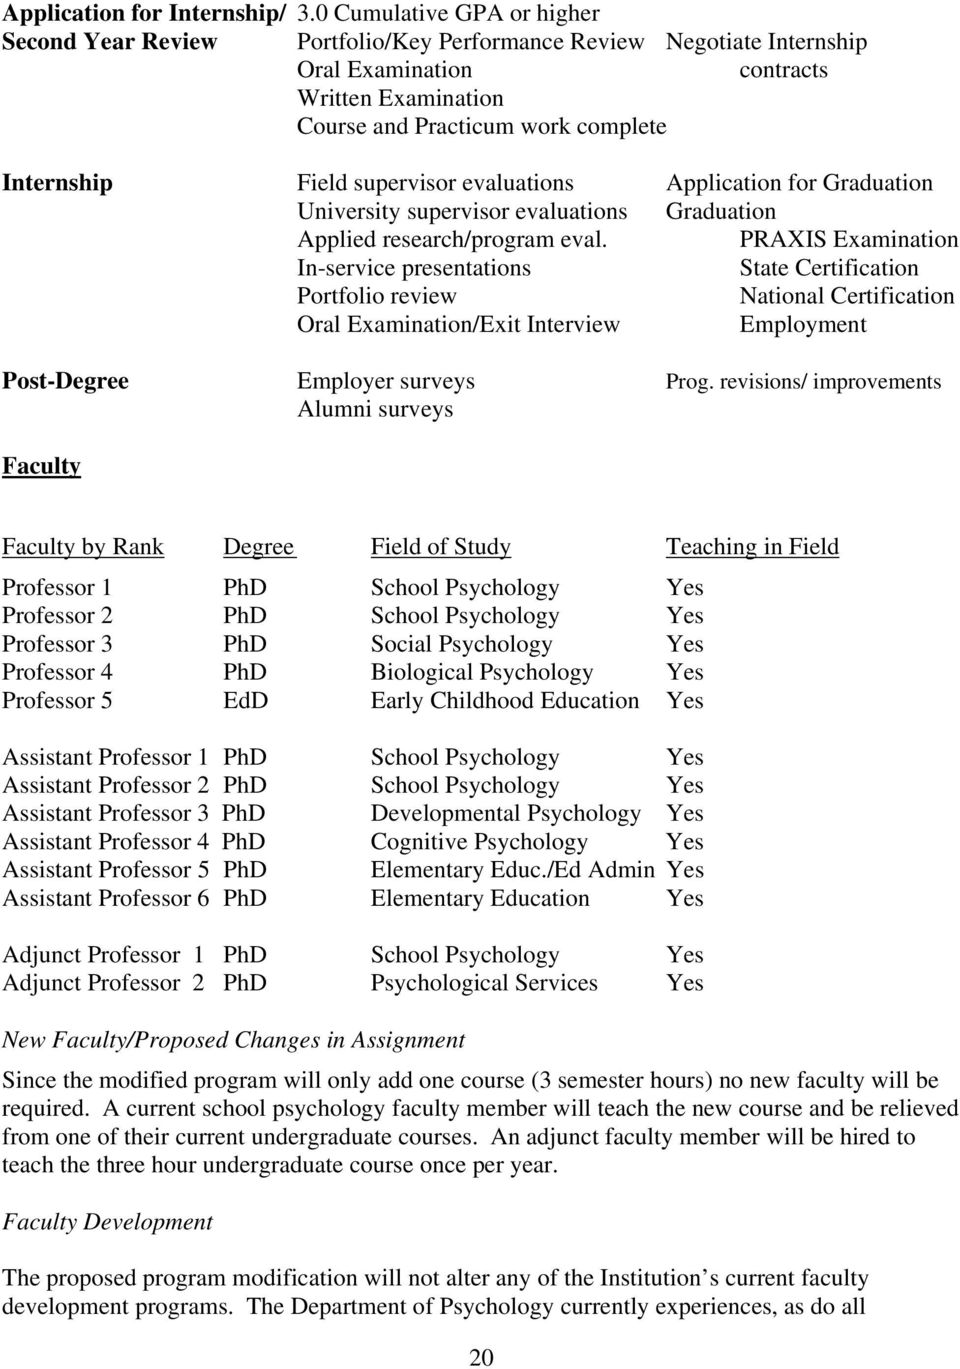 supervisor evaluations Application for Graduation University supervisor evaluations Graduation Applied research/program eval.